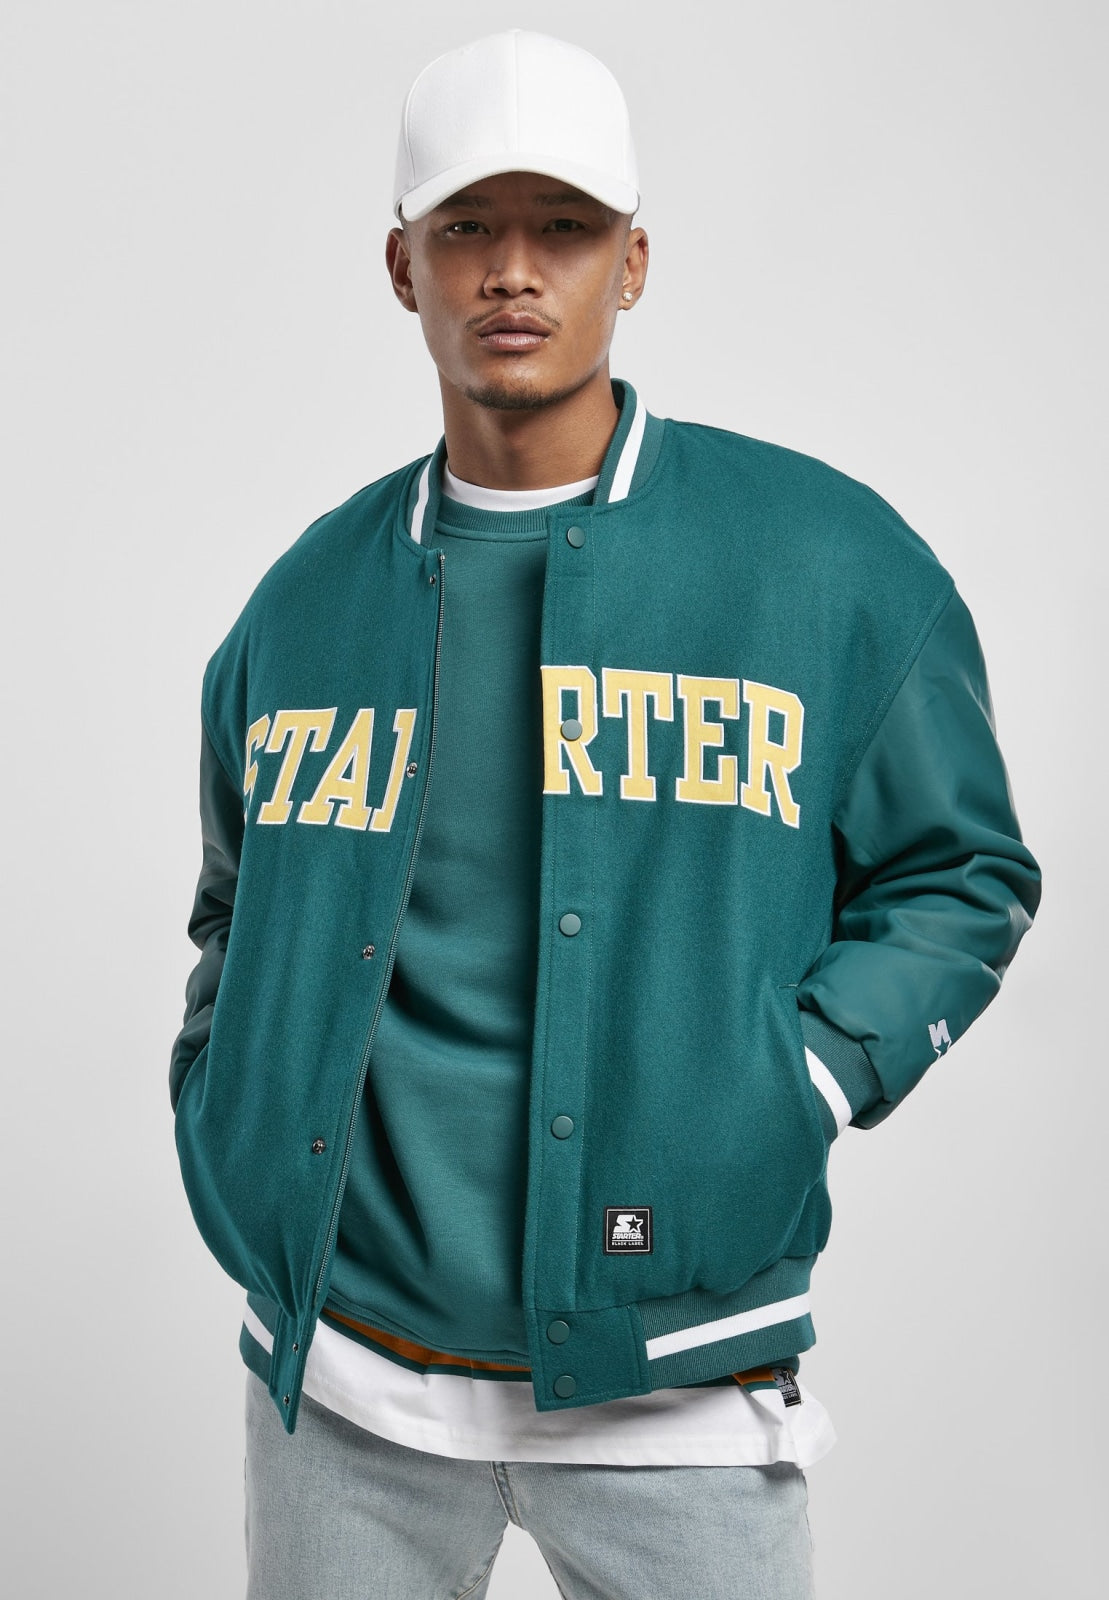 Starter Team Authentic Oldschool College Jacket (3 Colors!) Retro Green / s Jacket Starter